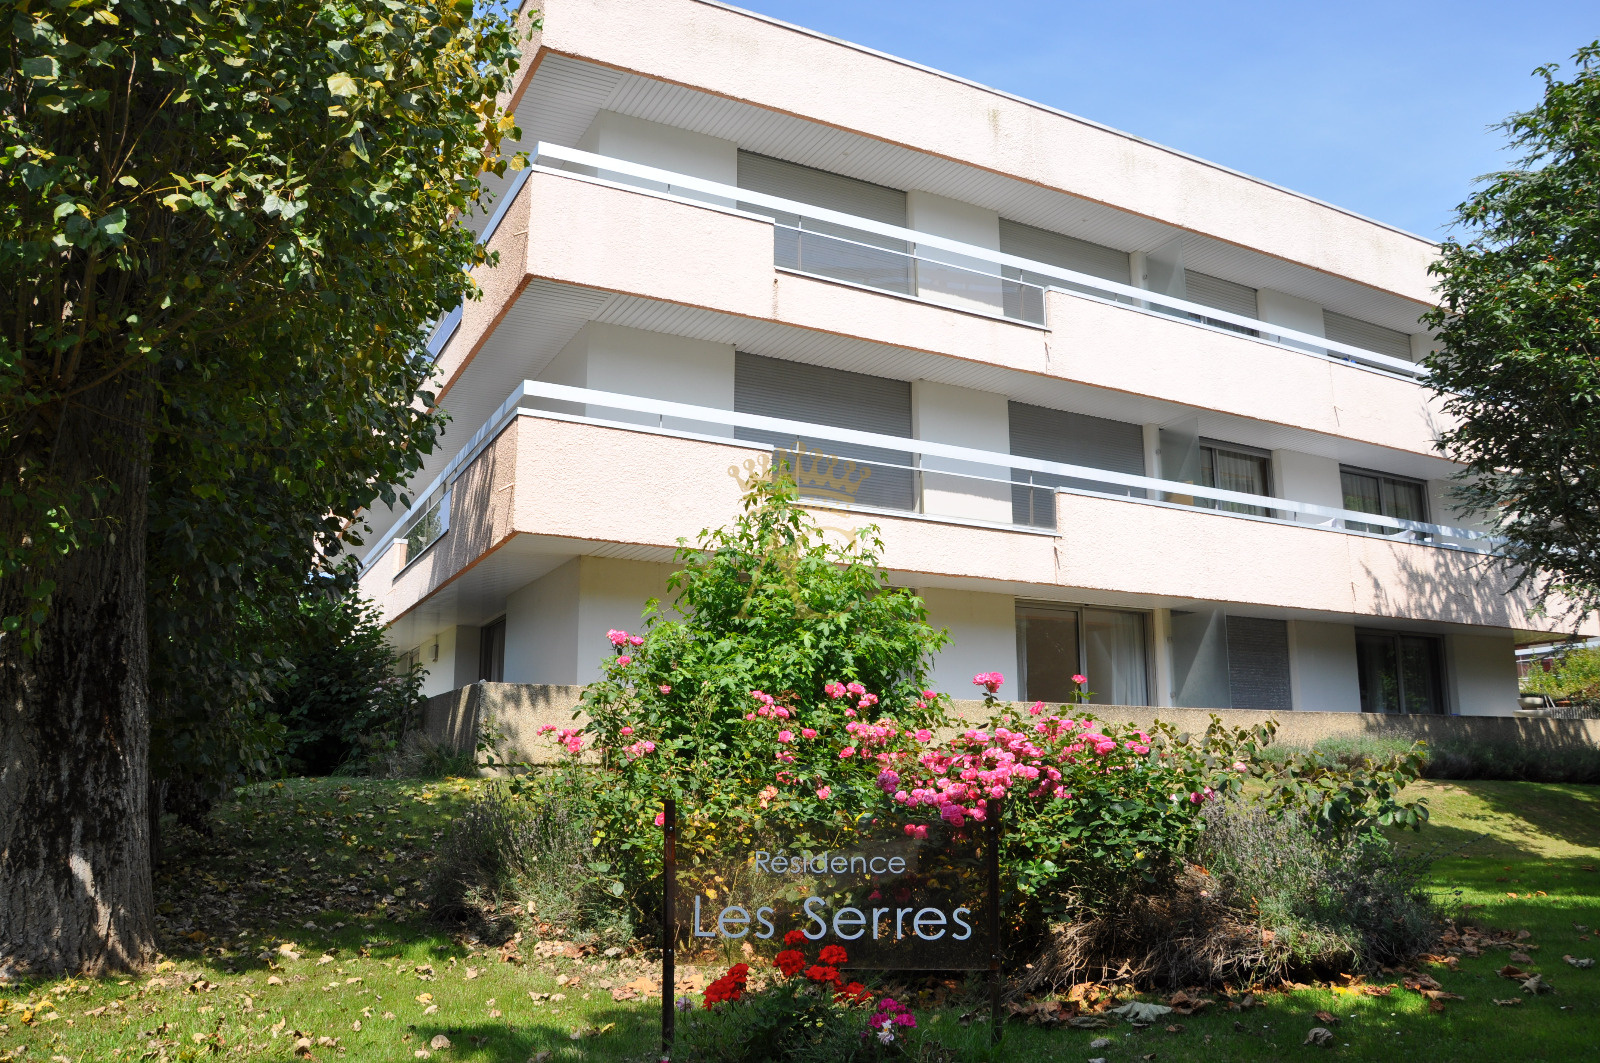 Vente appartement f3 dans le triangle d 39 or for F3 appartement